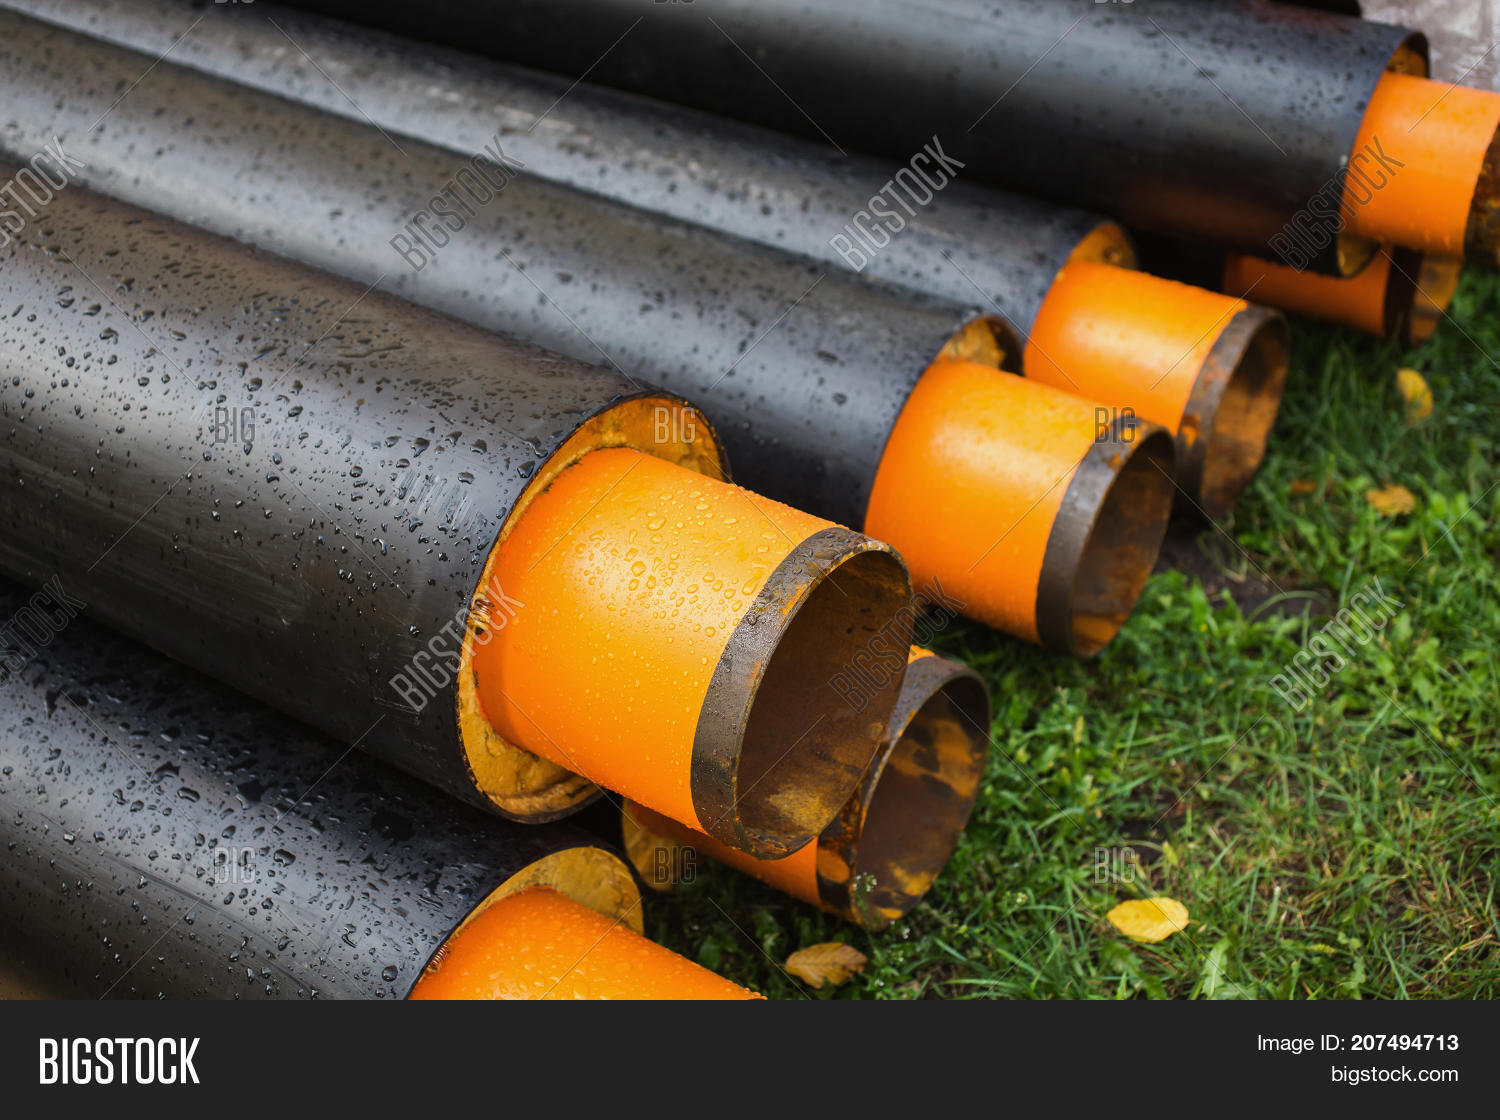 Water pipes with insulation lie on the grass. Pipe for water. New water pipe & Water Pipes Insulation Image u0026 Photo (Free Trial) | Bigstock